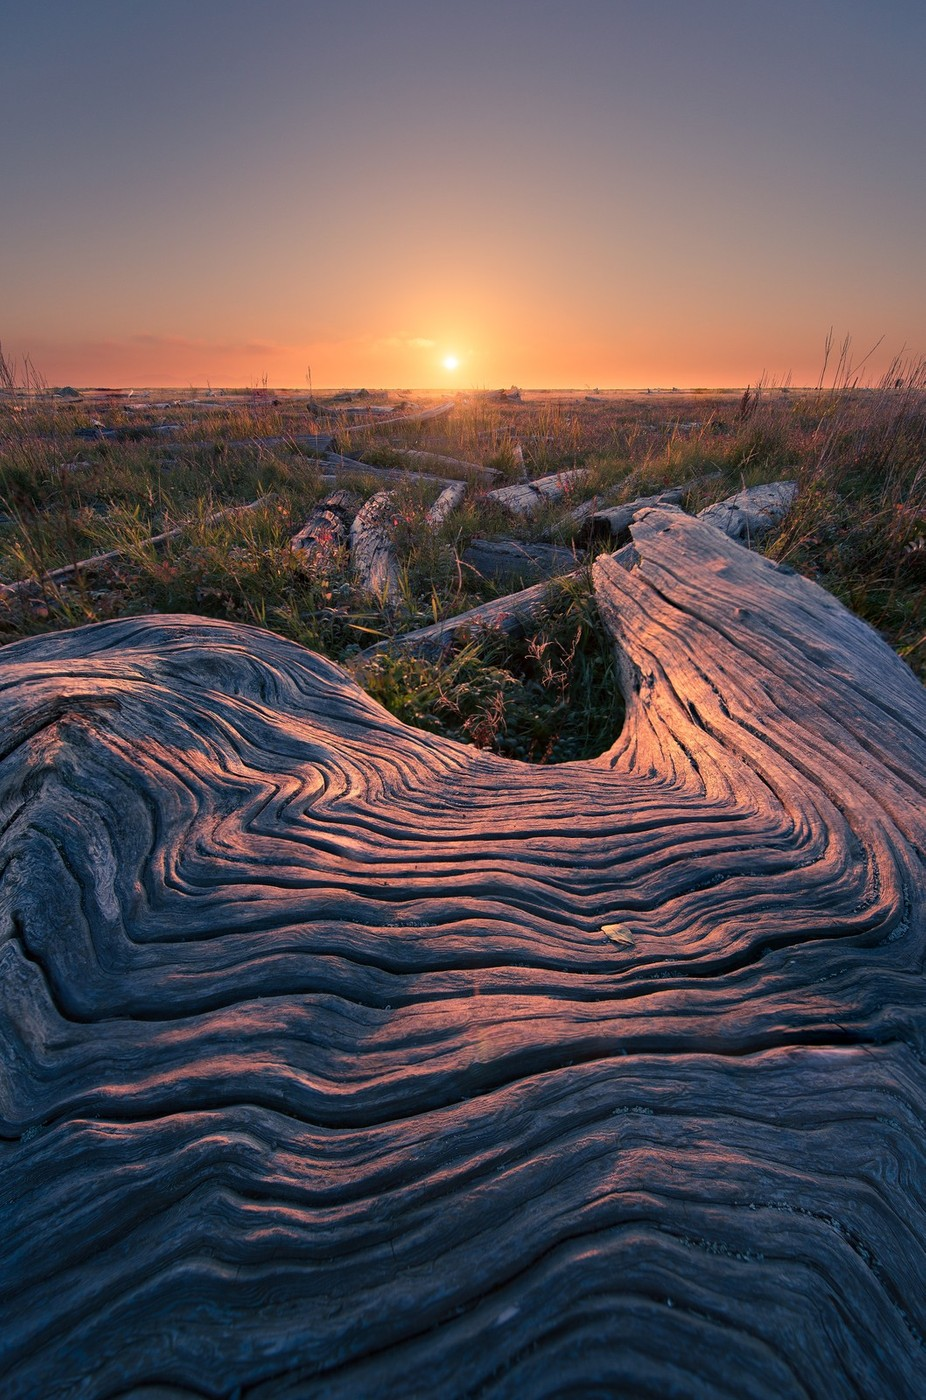 Grooves in the Bark by tristantodd